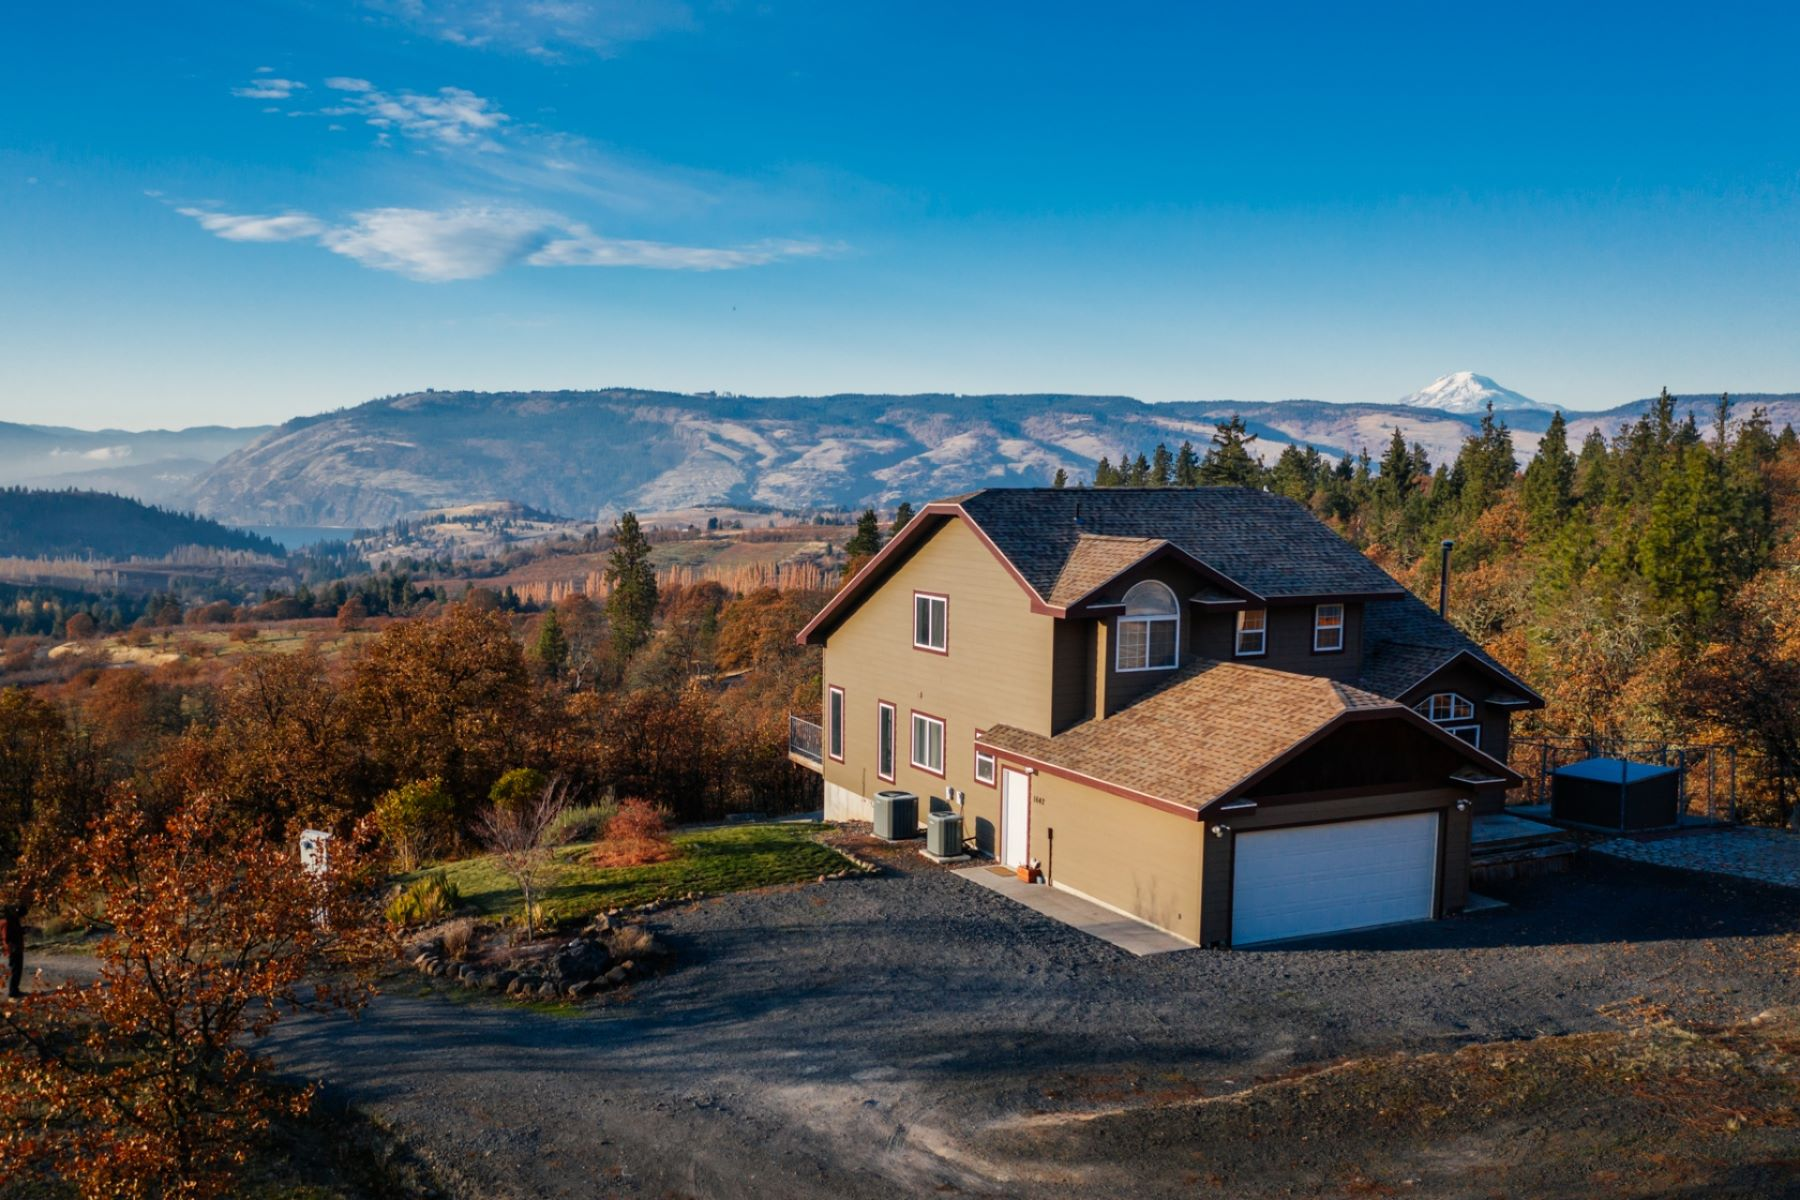 Other Residential Homes for Active at 1642 MORGENSEN RD Mosier, OR 97040 1642 MORGENSEN RD Mosier, Oregon 97040 United States